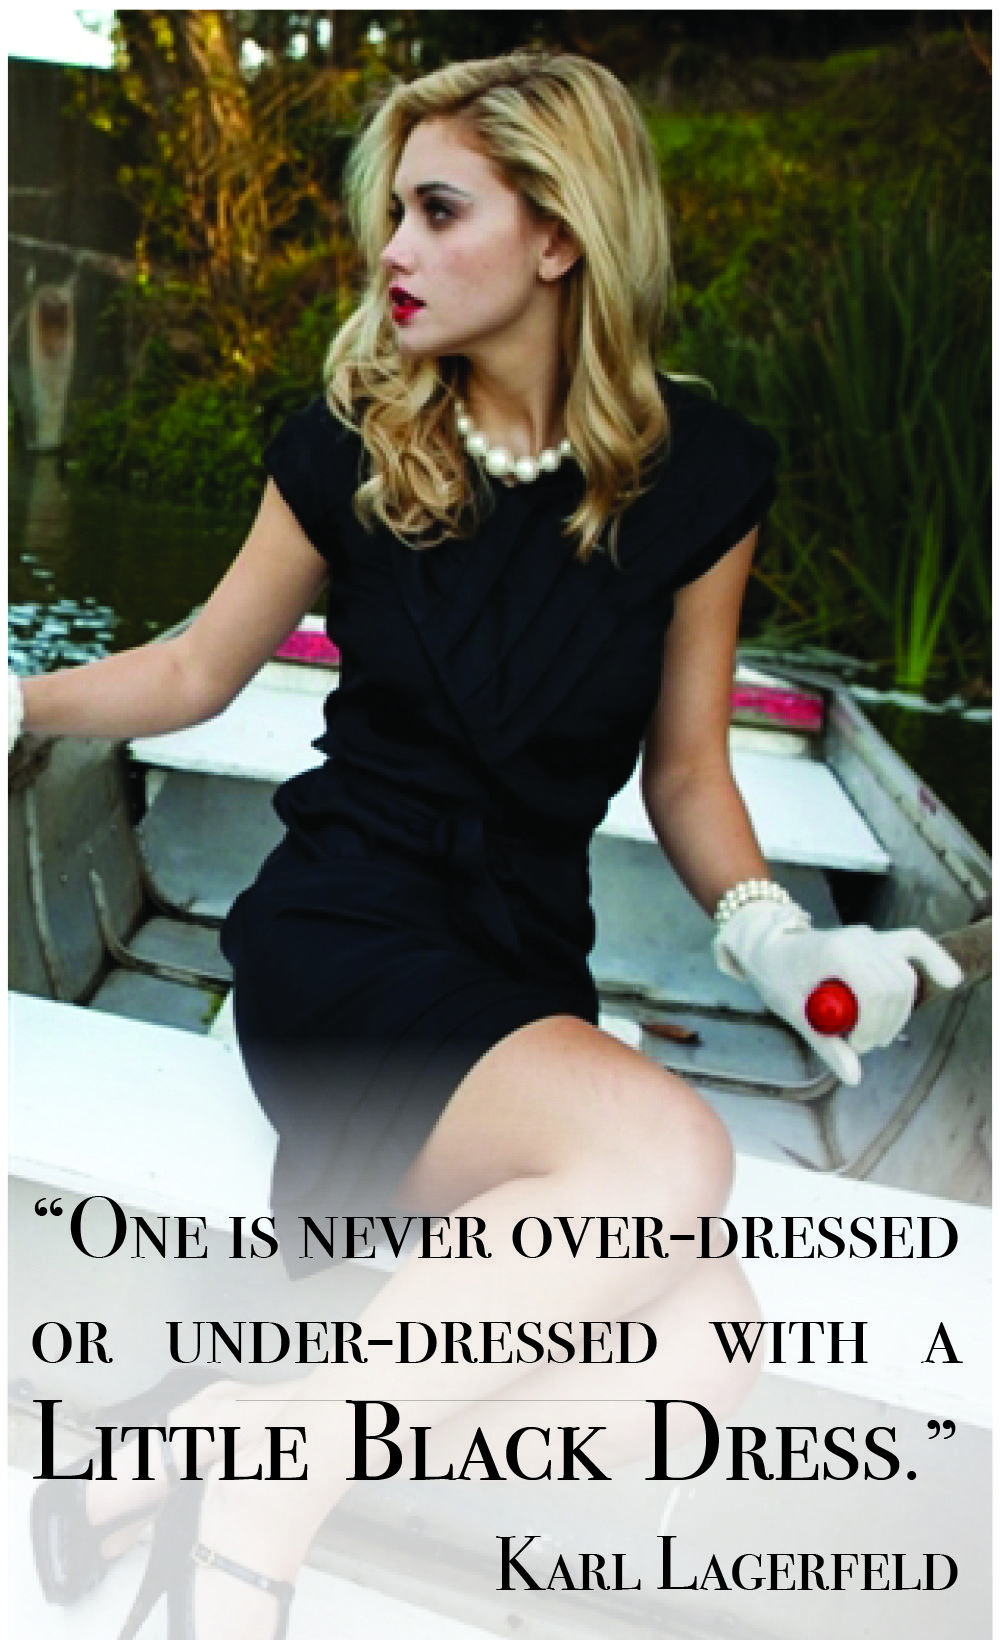 Black dress quotes pinterest - Whenever There Is A Question Regarding What To Wear To An Event I Always Defer To My Little Black Dress You Can Never Go Wrong That S Why I Am Constantly